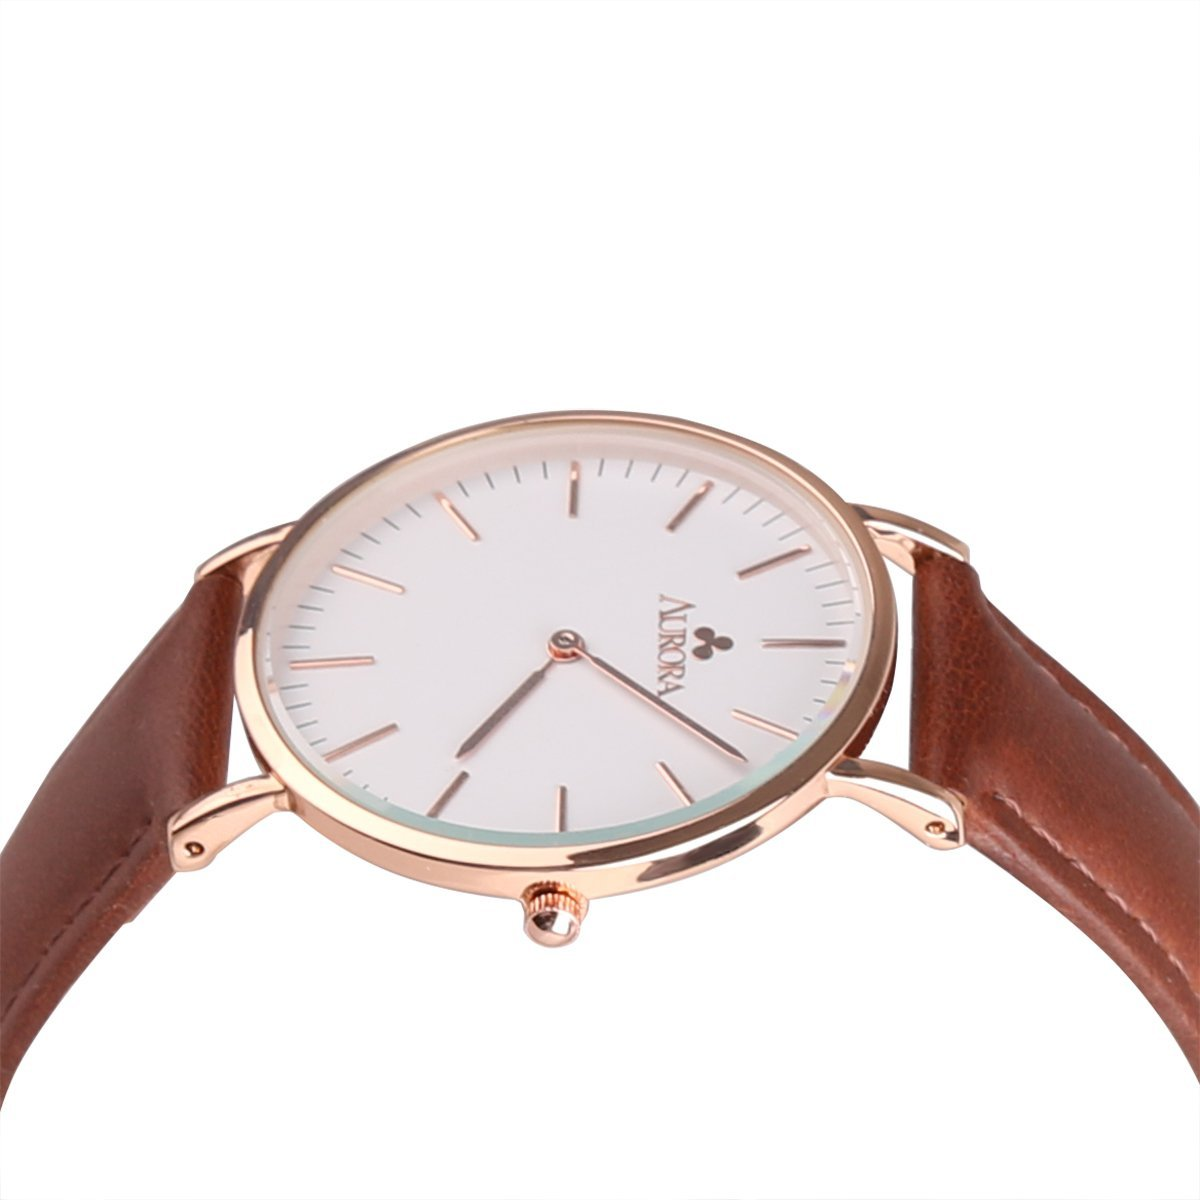 Aurora Women's Metal Retro Casual Round Dial Quartz Analog Wrist Watch with Brown Leather Band-Rose Gold 1